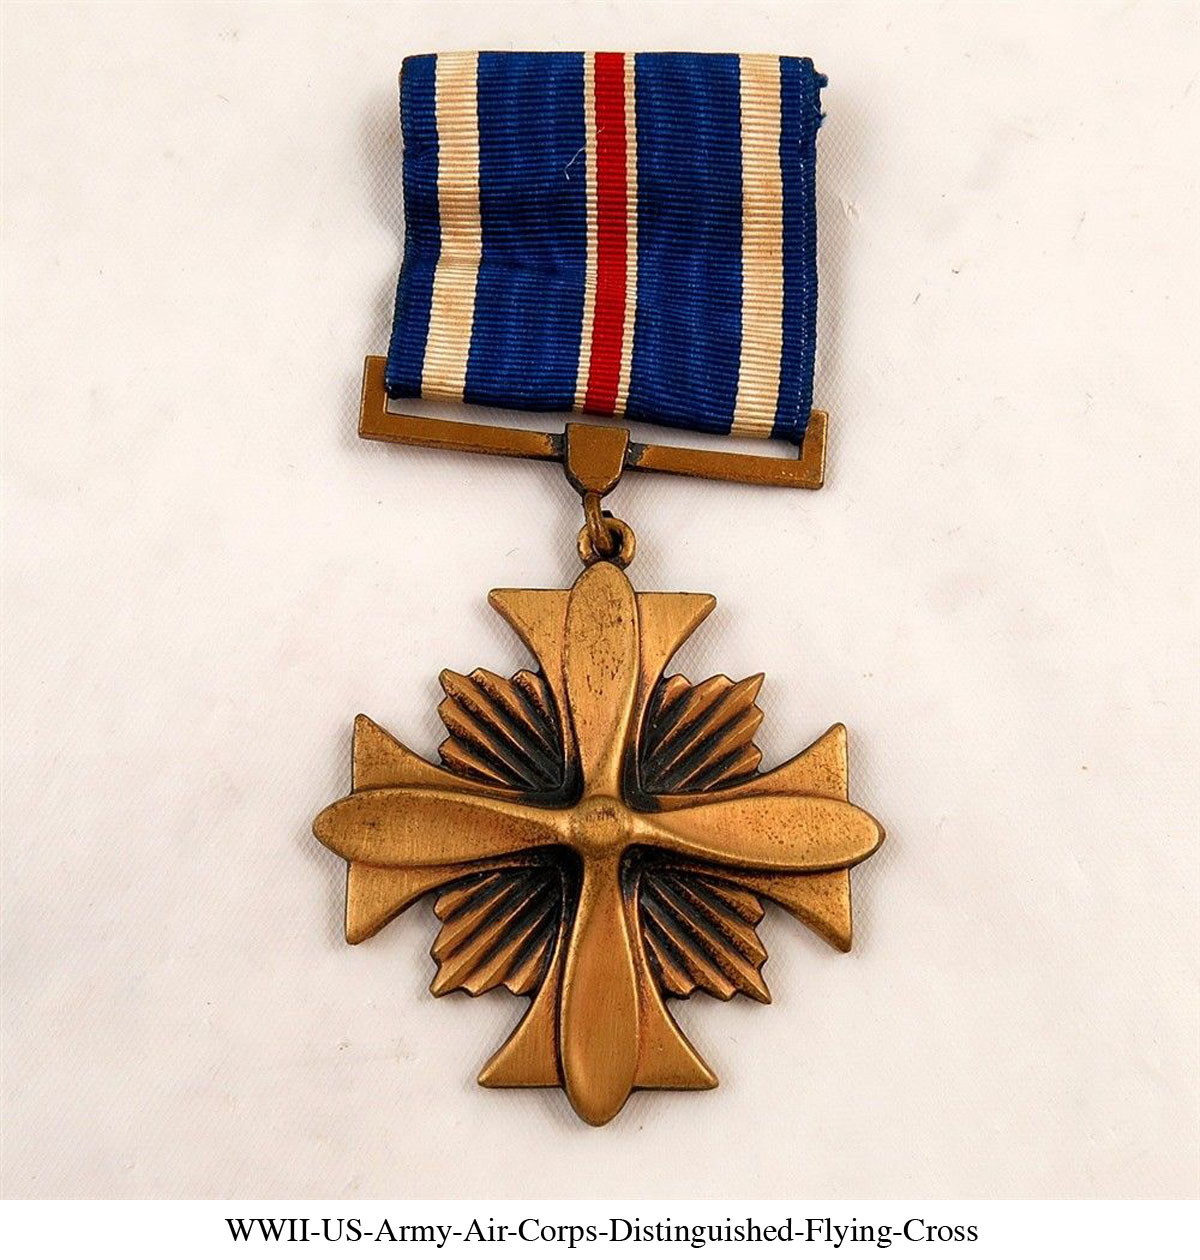 WWII-US-Army-Air-Force-Distinguished-Flying-Cross